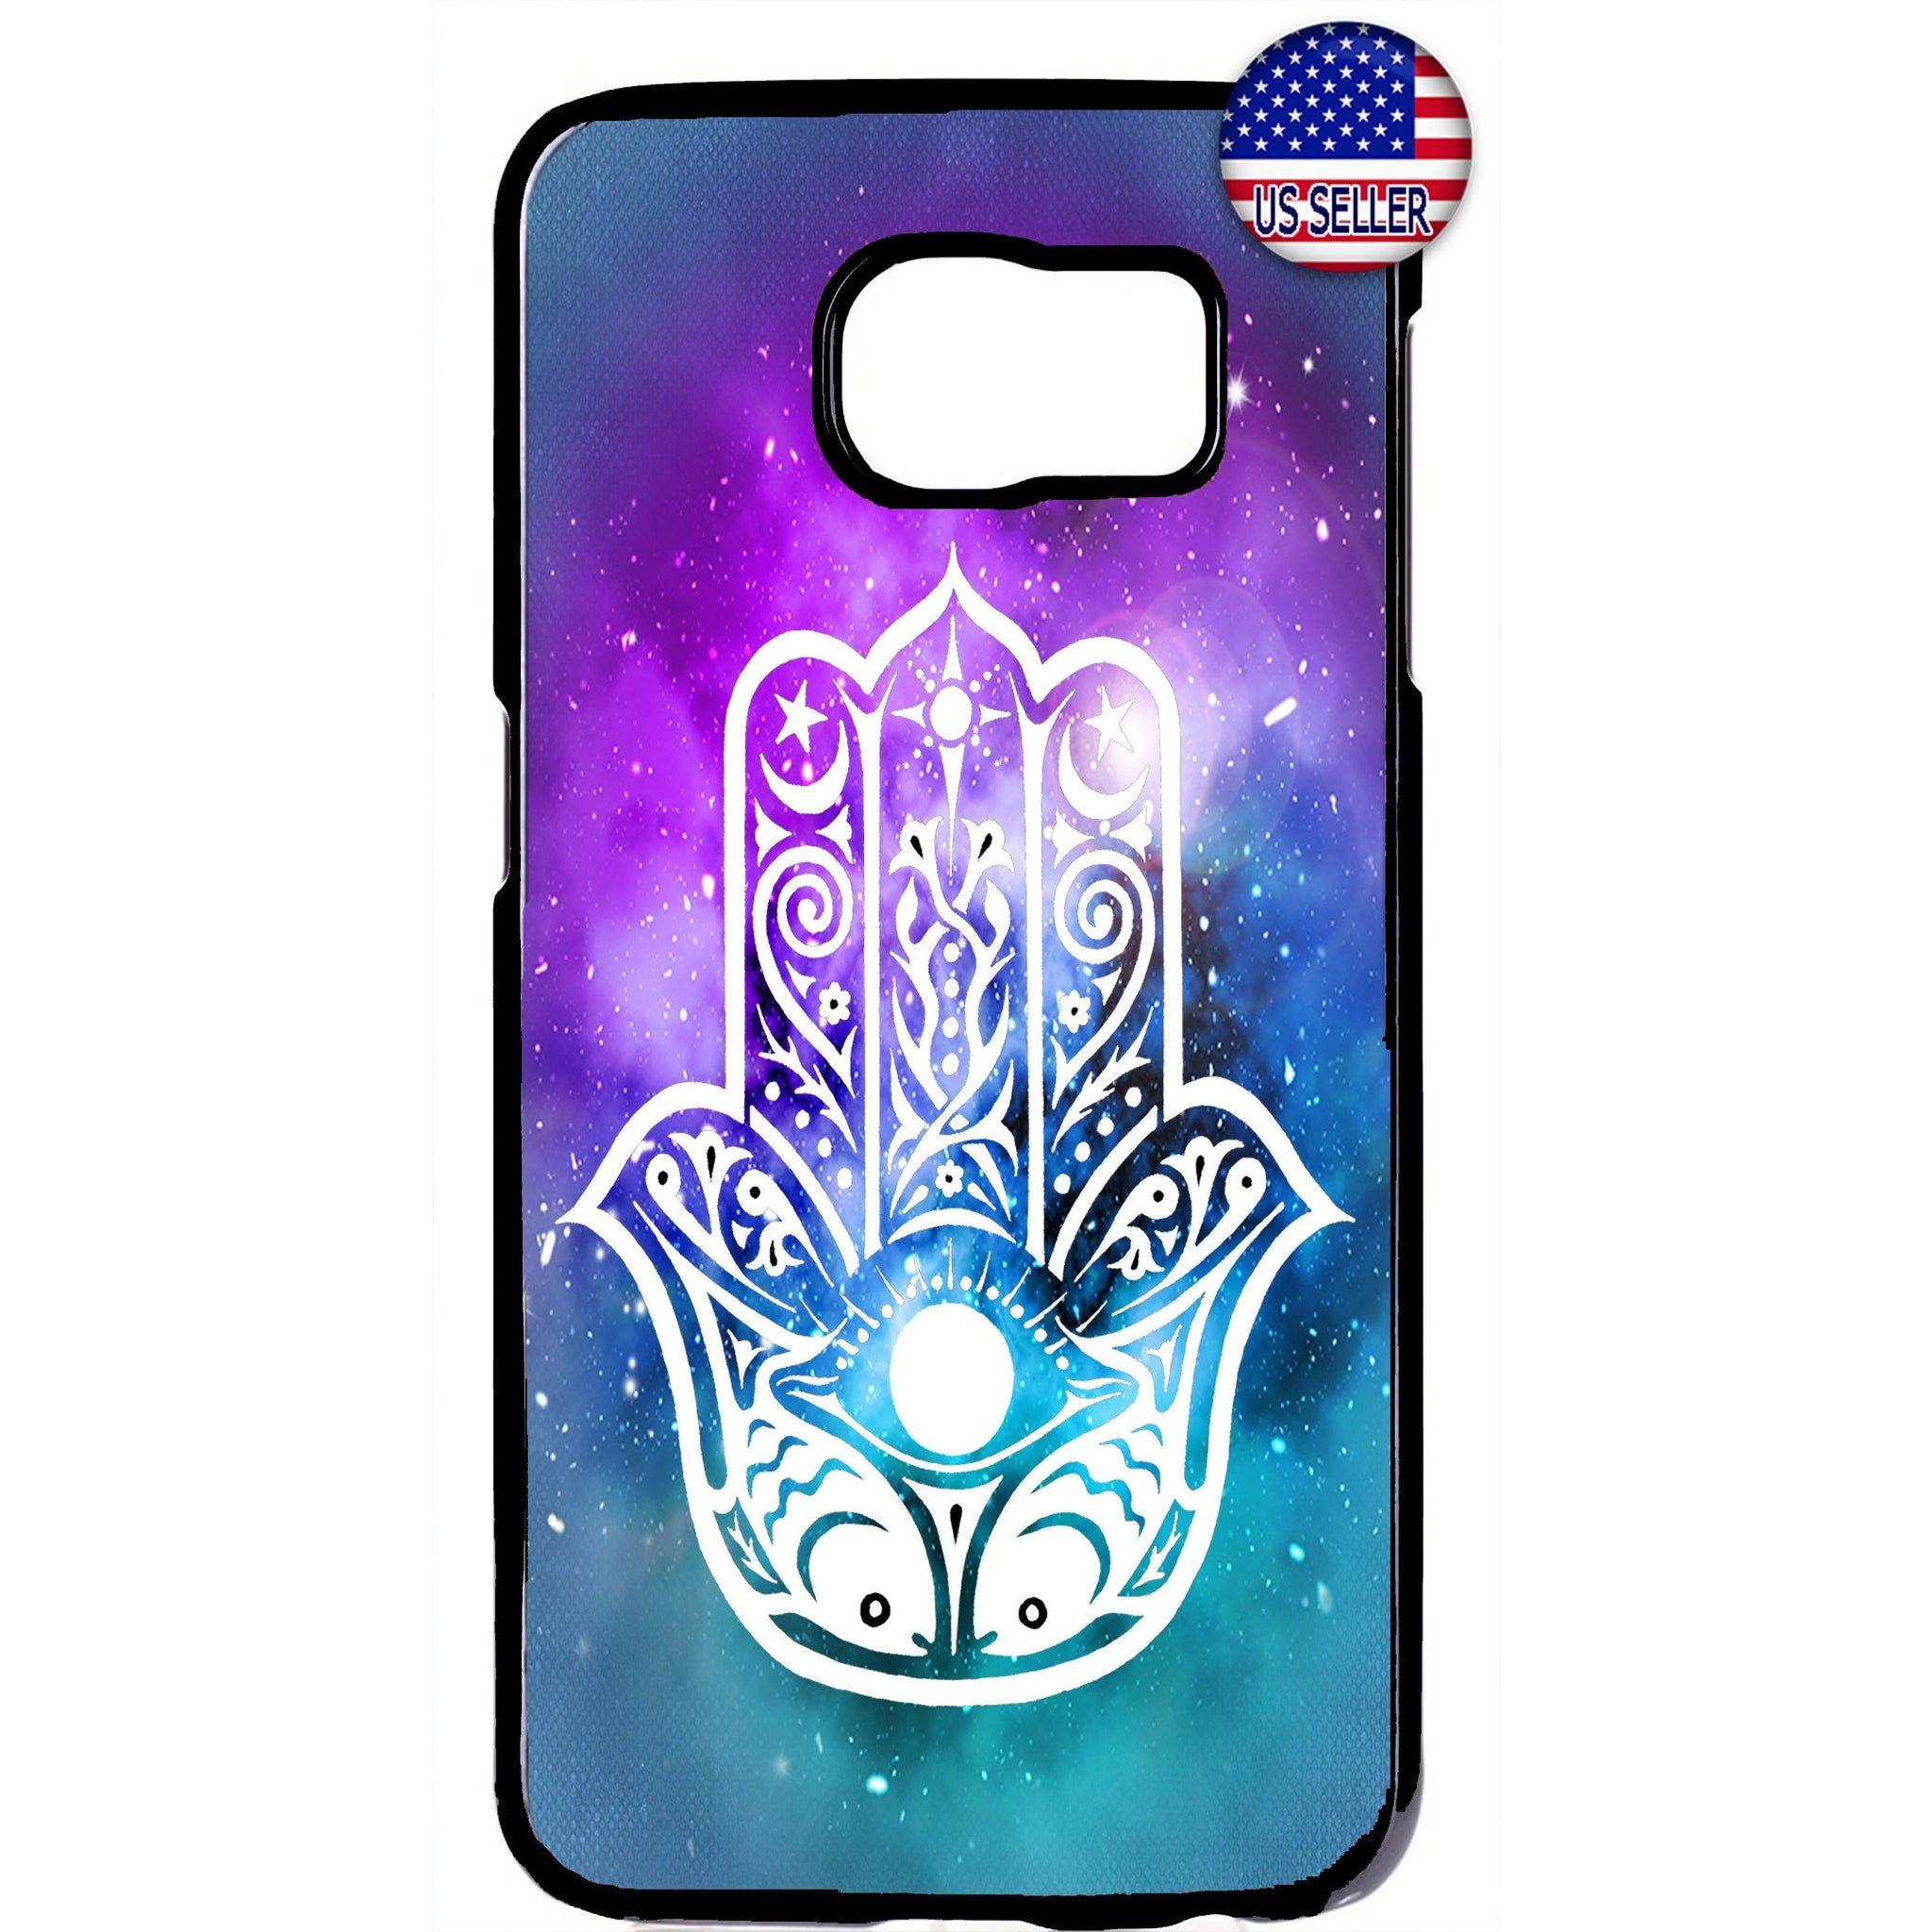 Galaxy Hamsa Evil Eye Rubber Case Cover For Samsung Galaxy Note